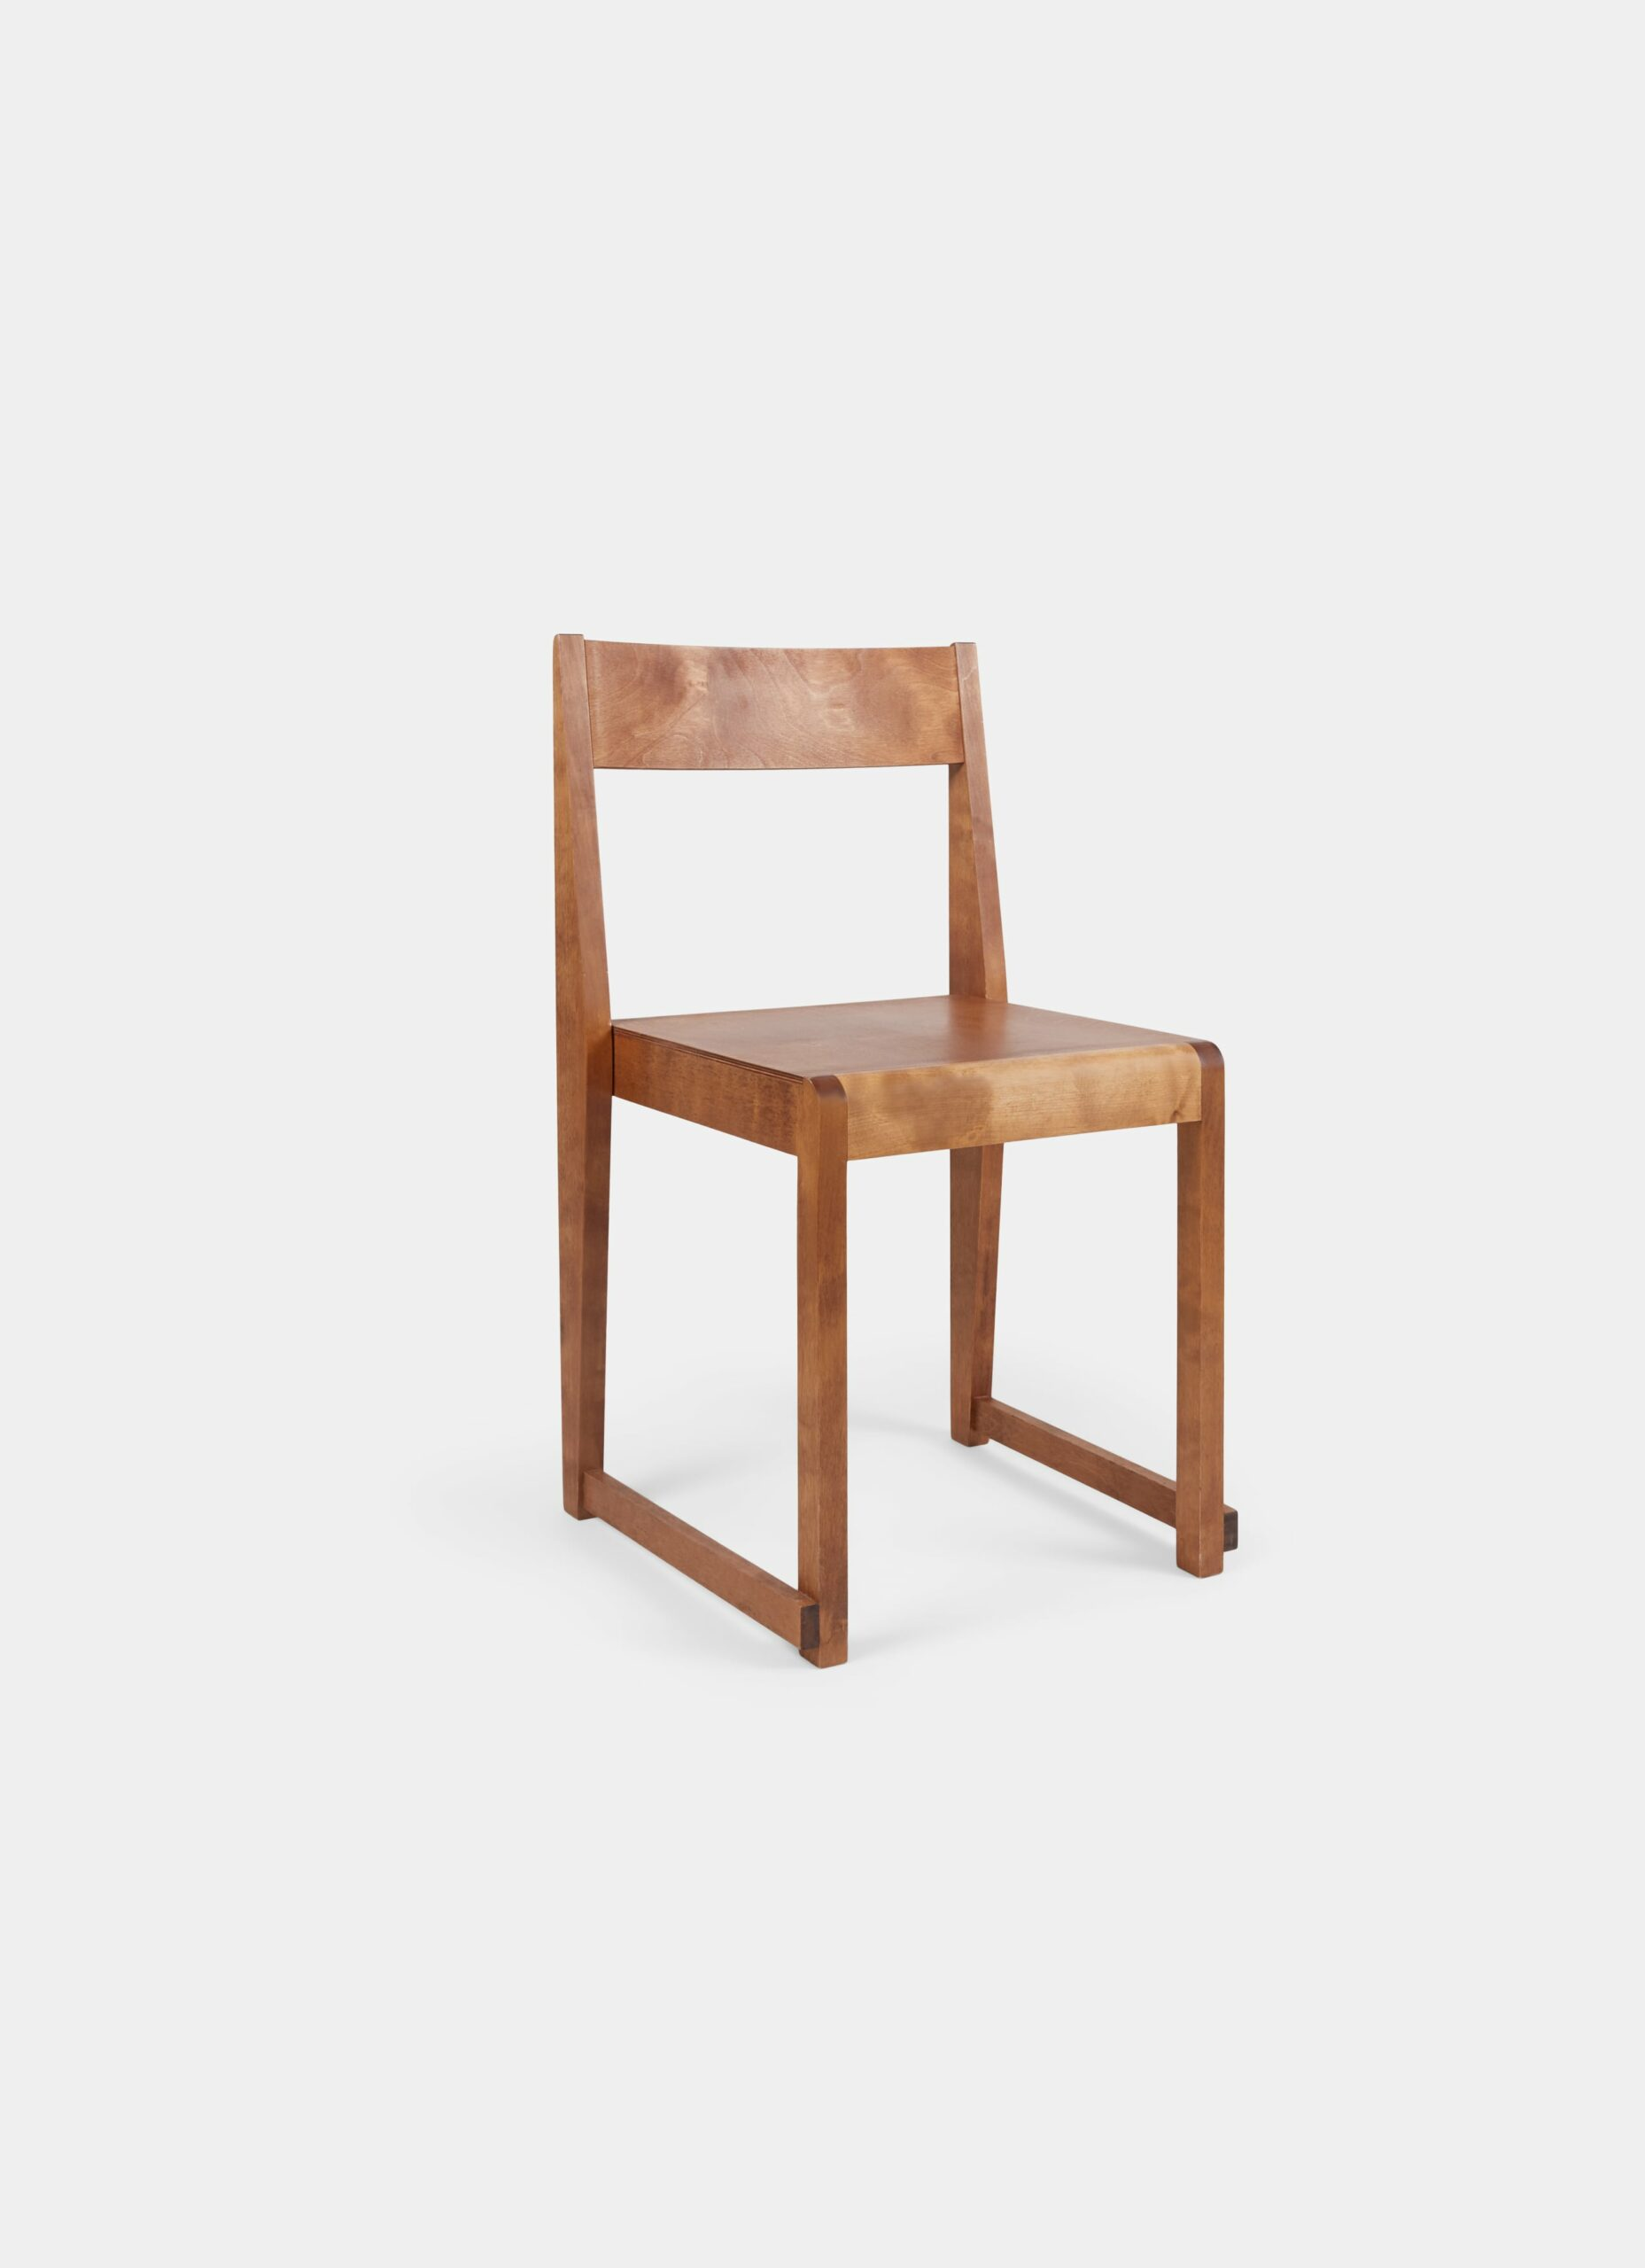 Frama - Chair 01 - Warm Brown Wood